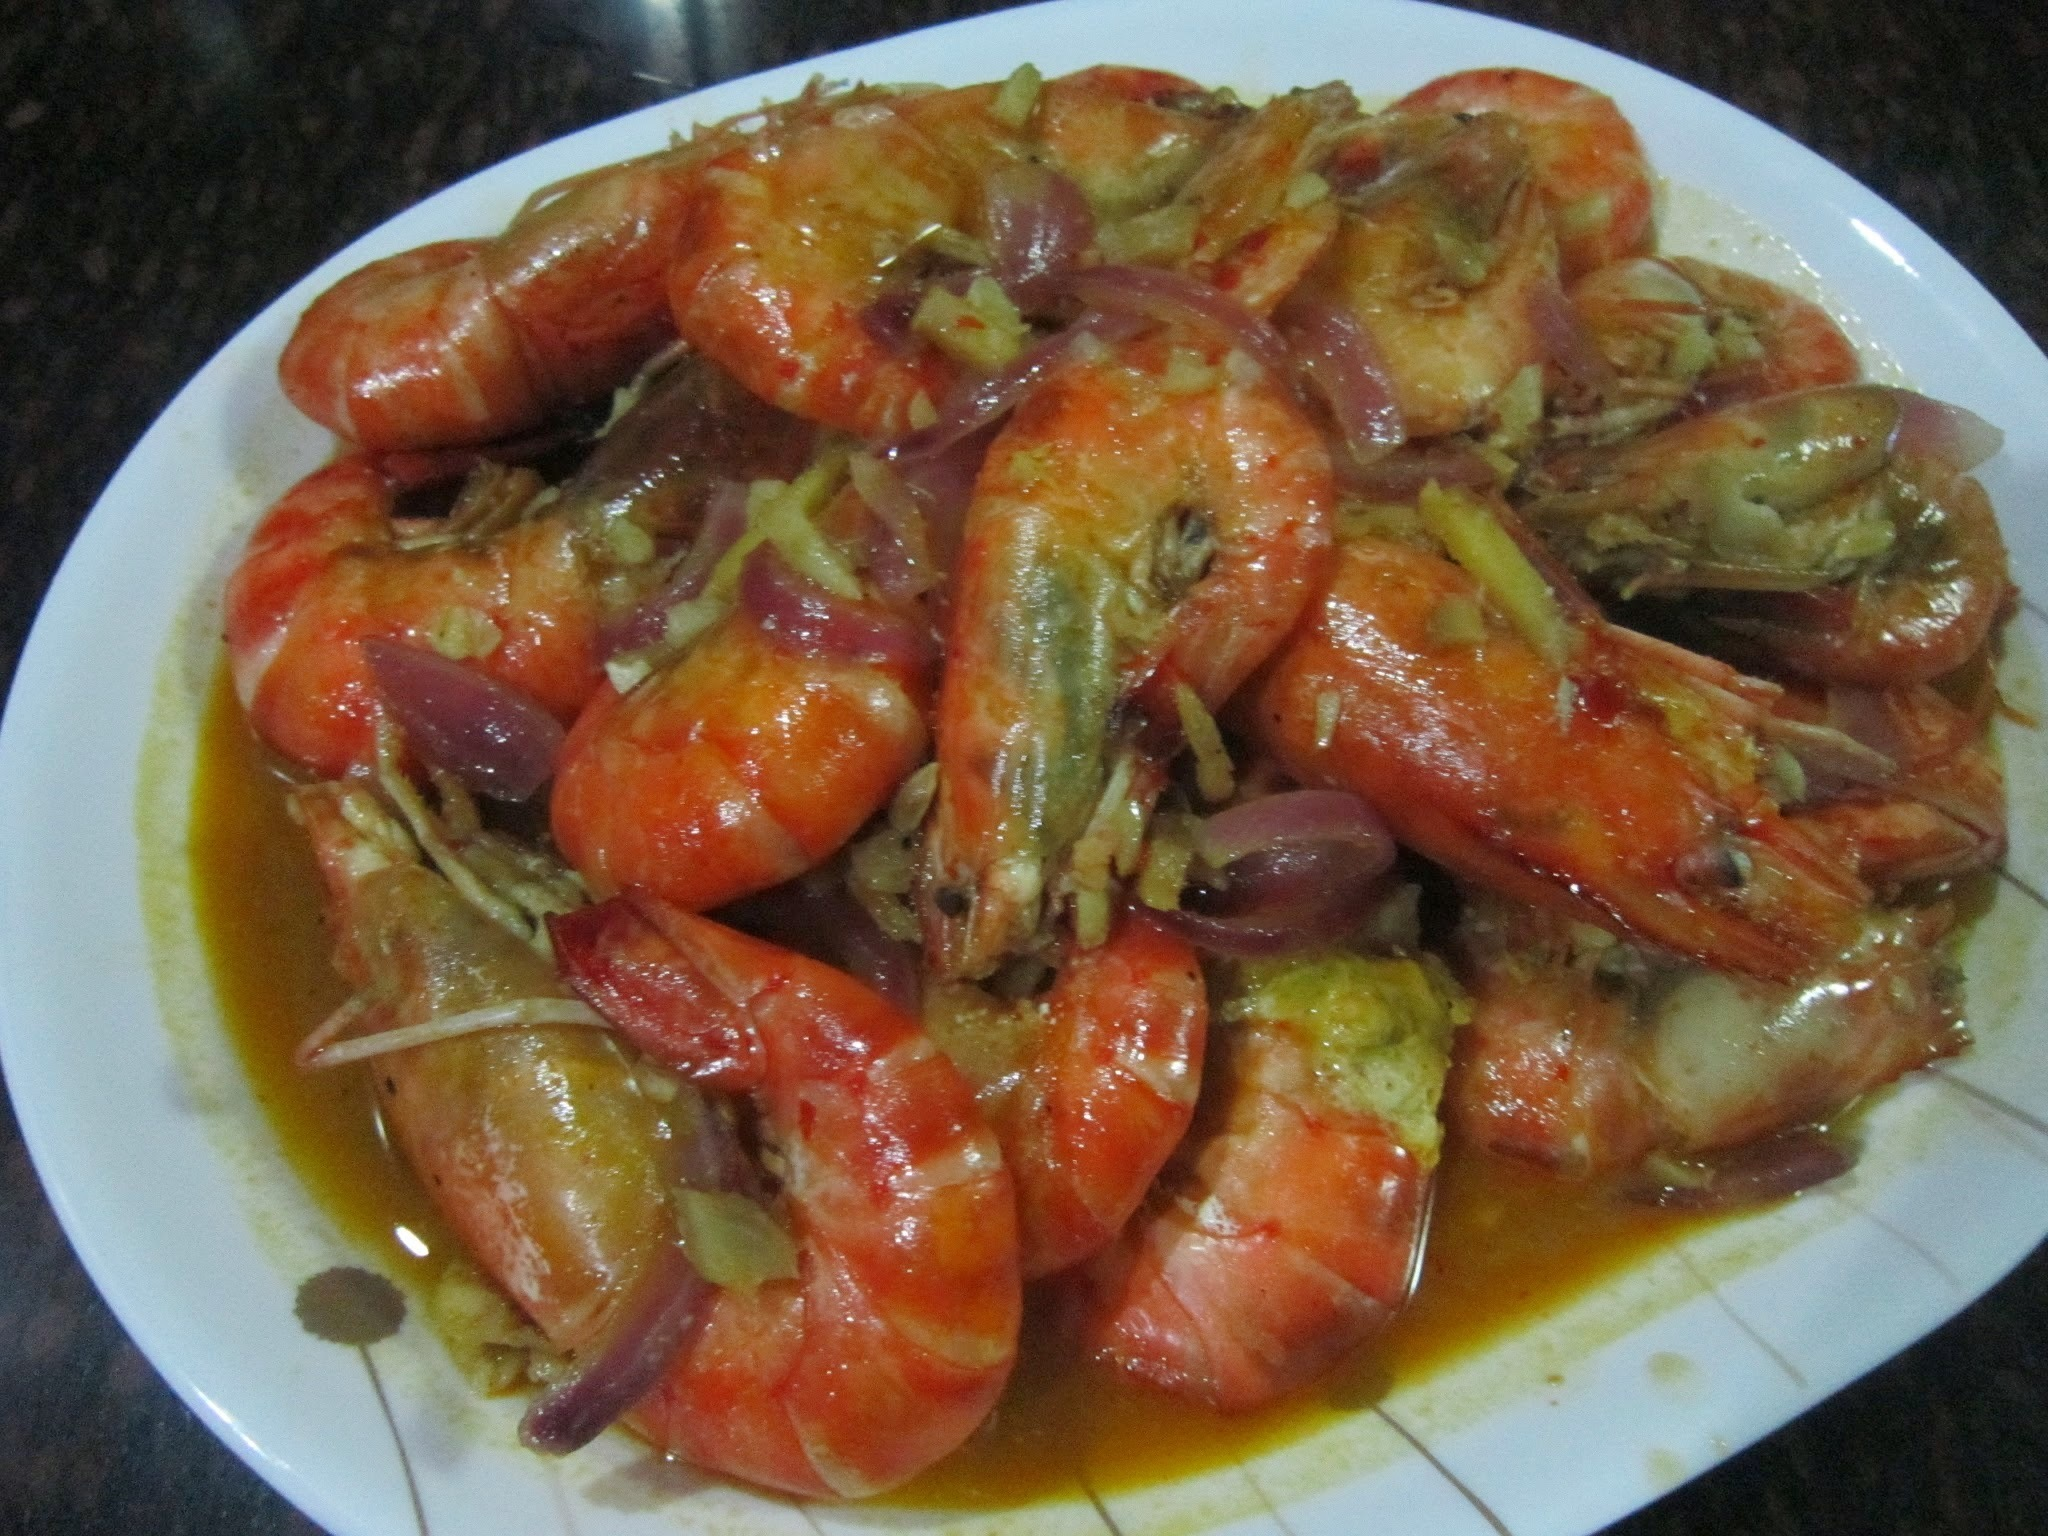 SHRIMP in CHILI-GARLIC-LEMON SAUCE